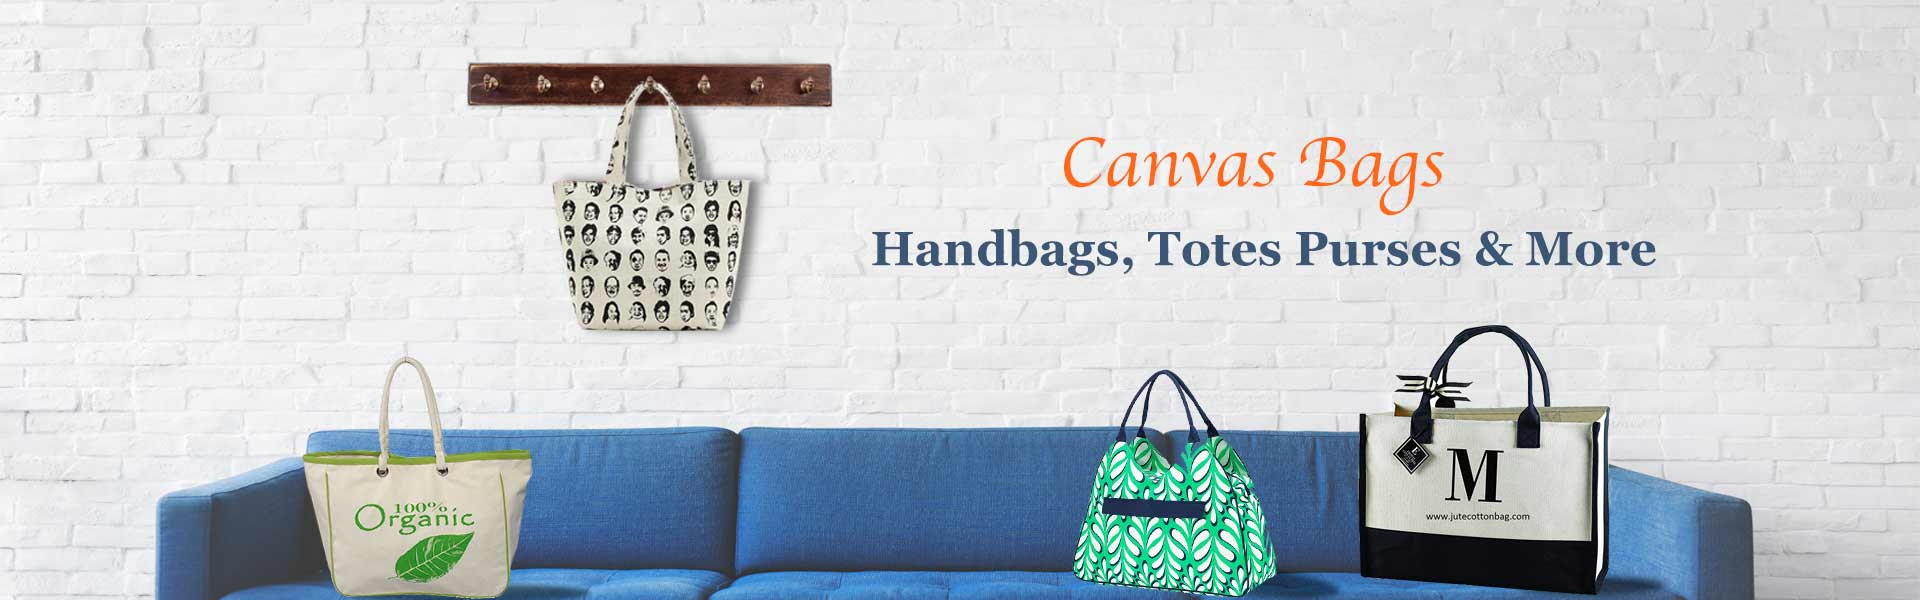 Wholesale Canvas Bags Supplier in Malta